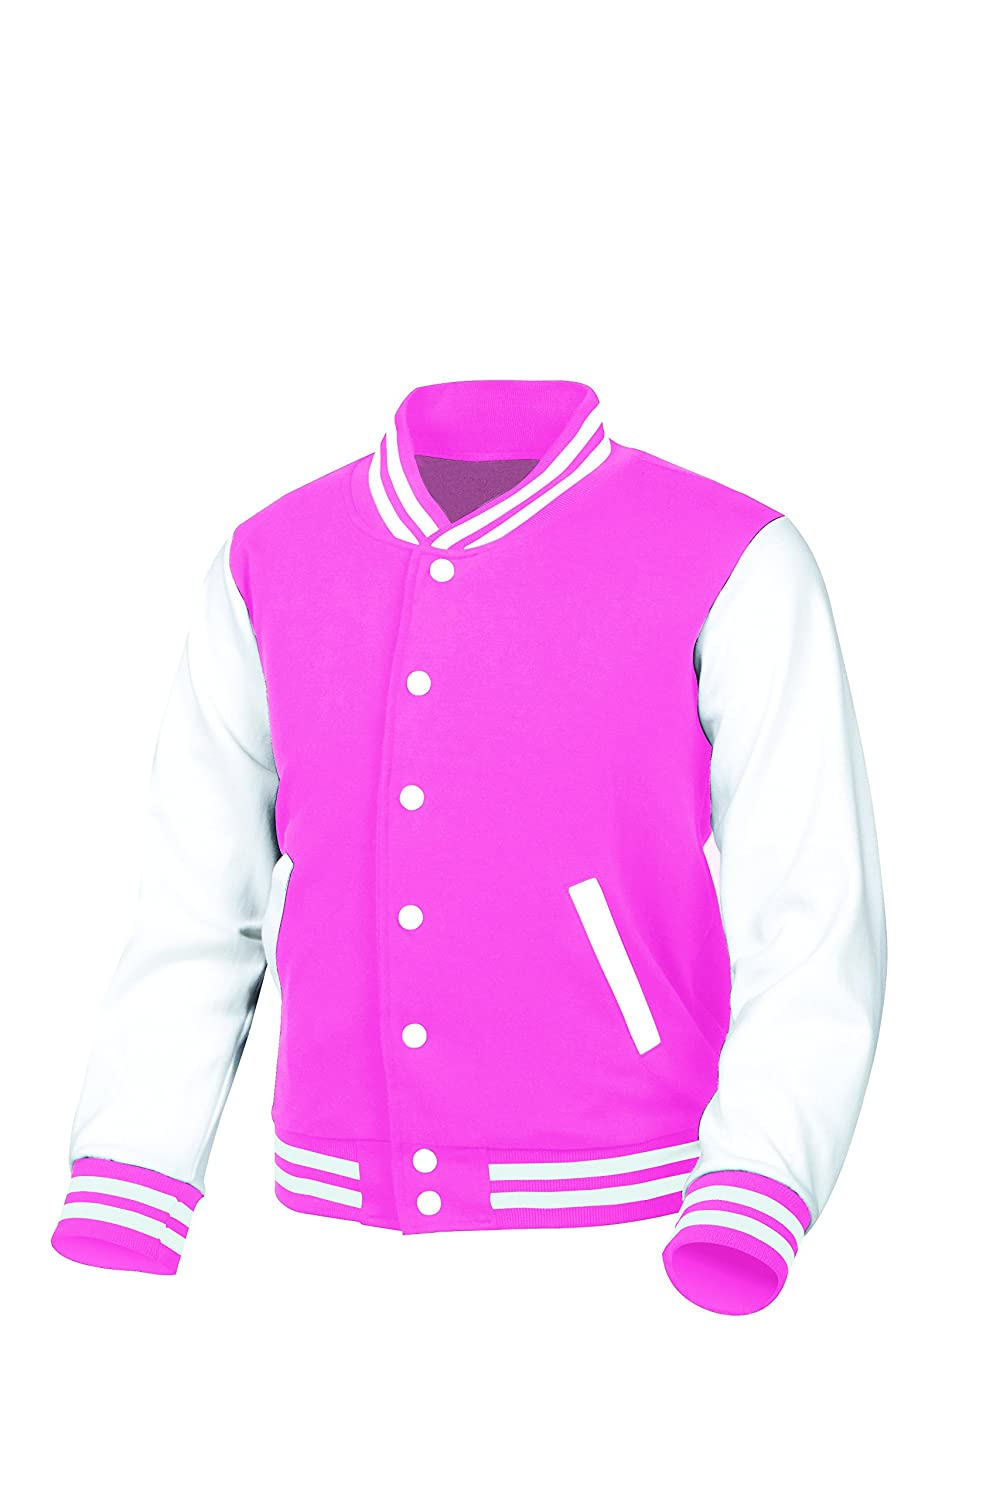 Amazon.com: myglory77mall Cotton Baseball Varsity College Letterman Raglan Jacket 626: Clothing